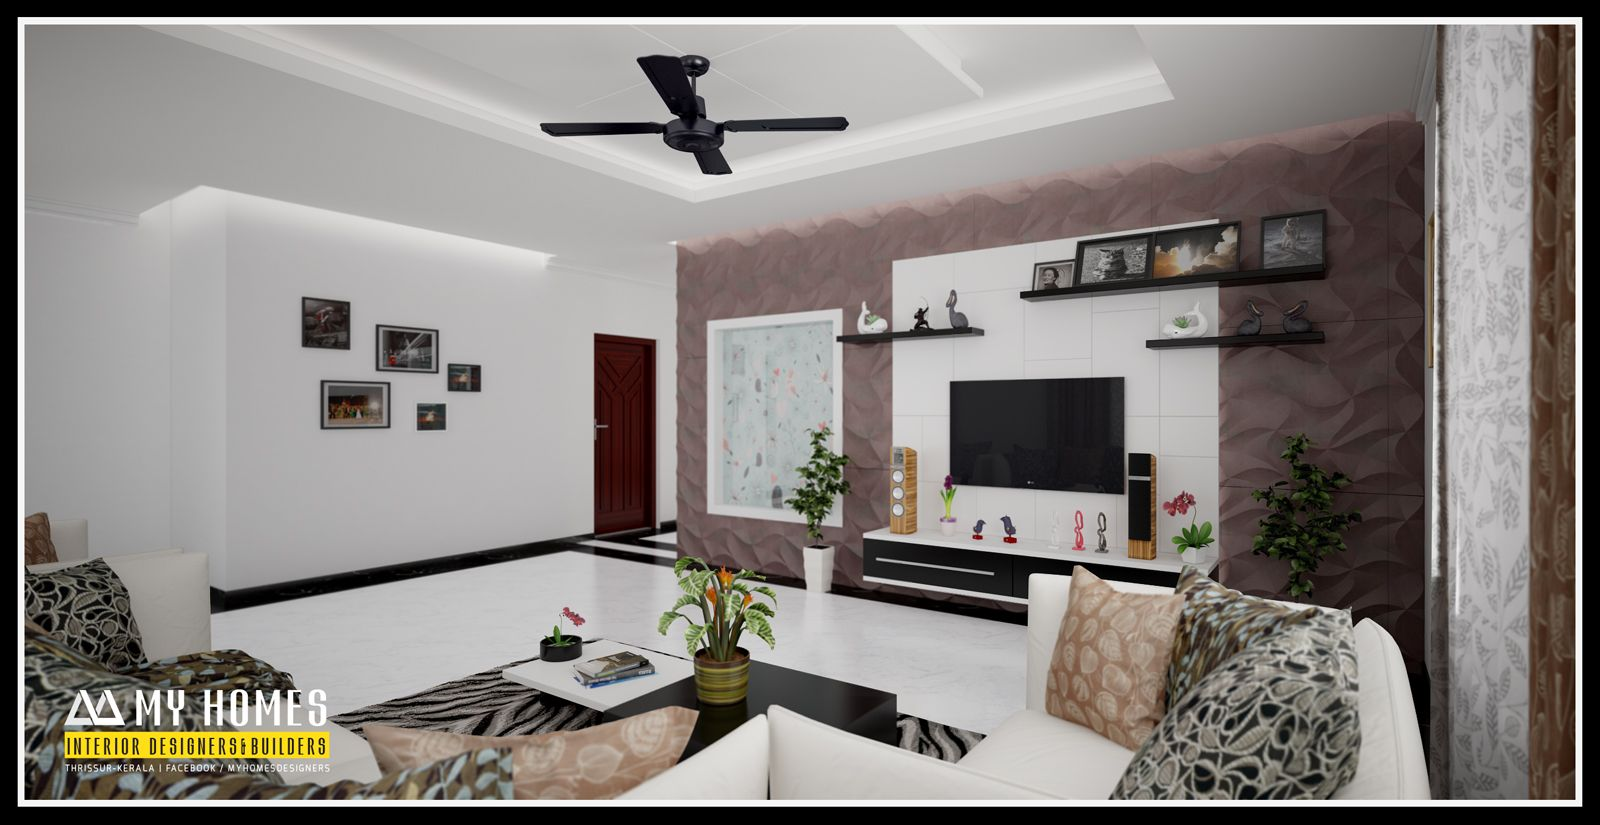 Living Room Designs Kerala Style kerala living room designs present trendy designs for creating an